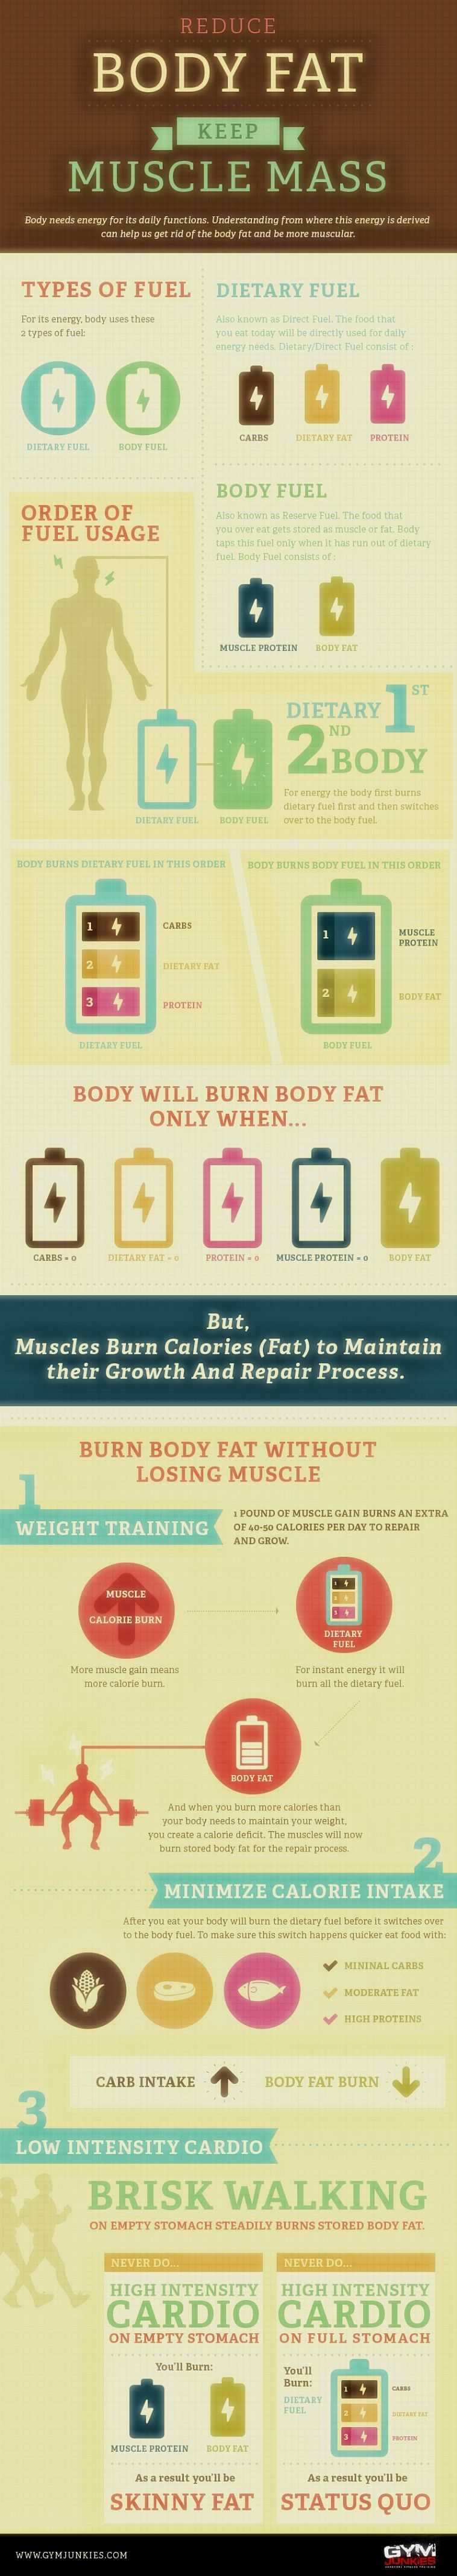 Reduce Your Body Fat Keep Muscle Mass